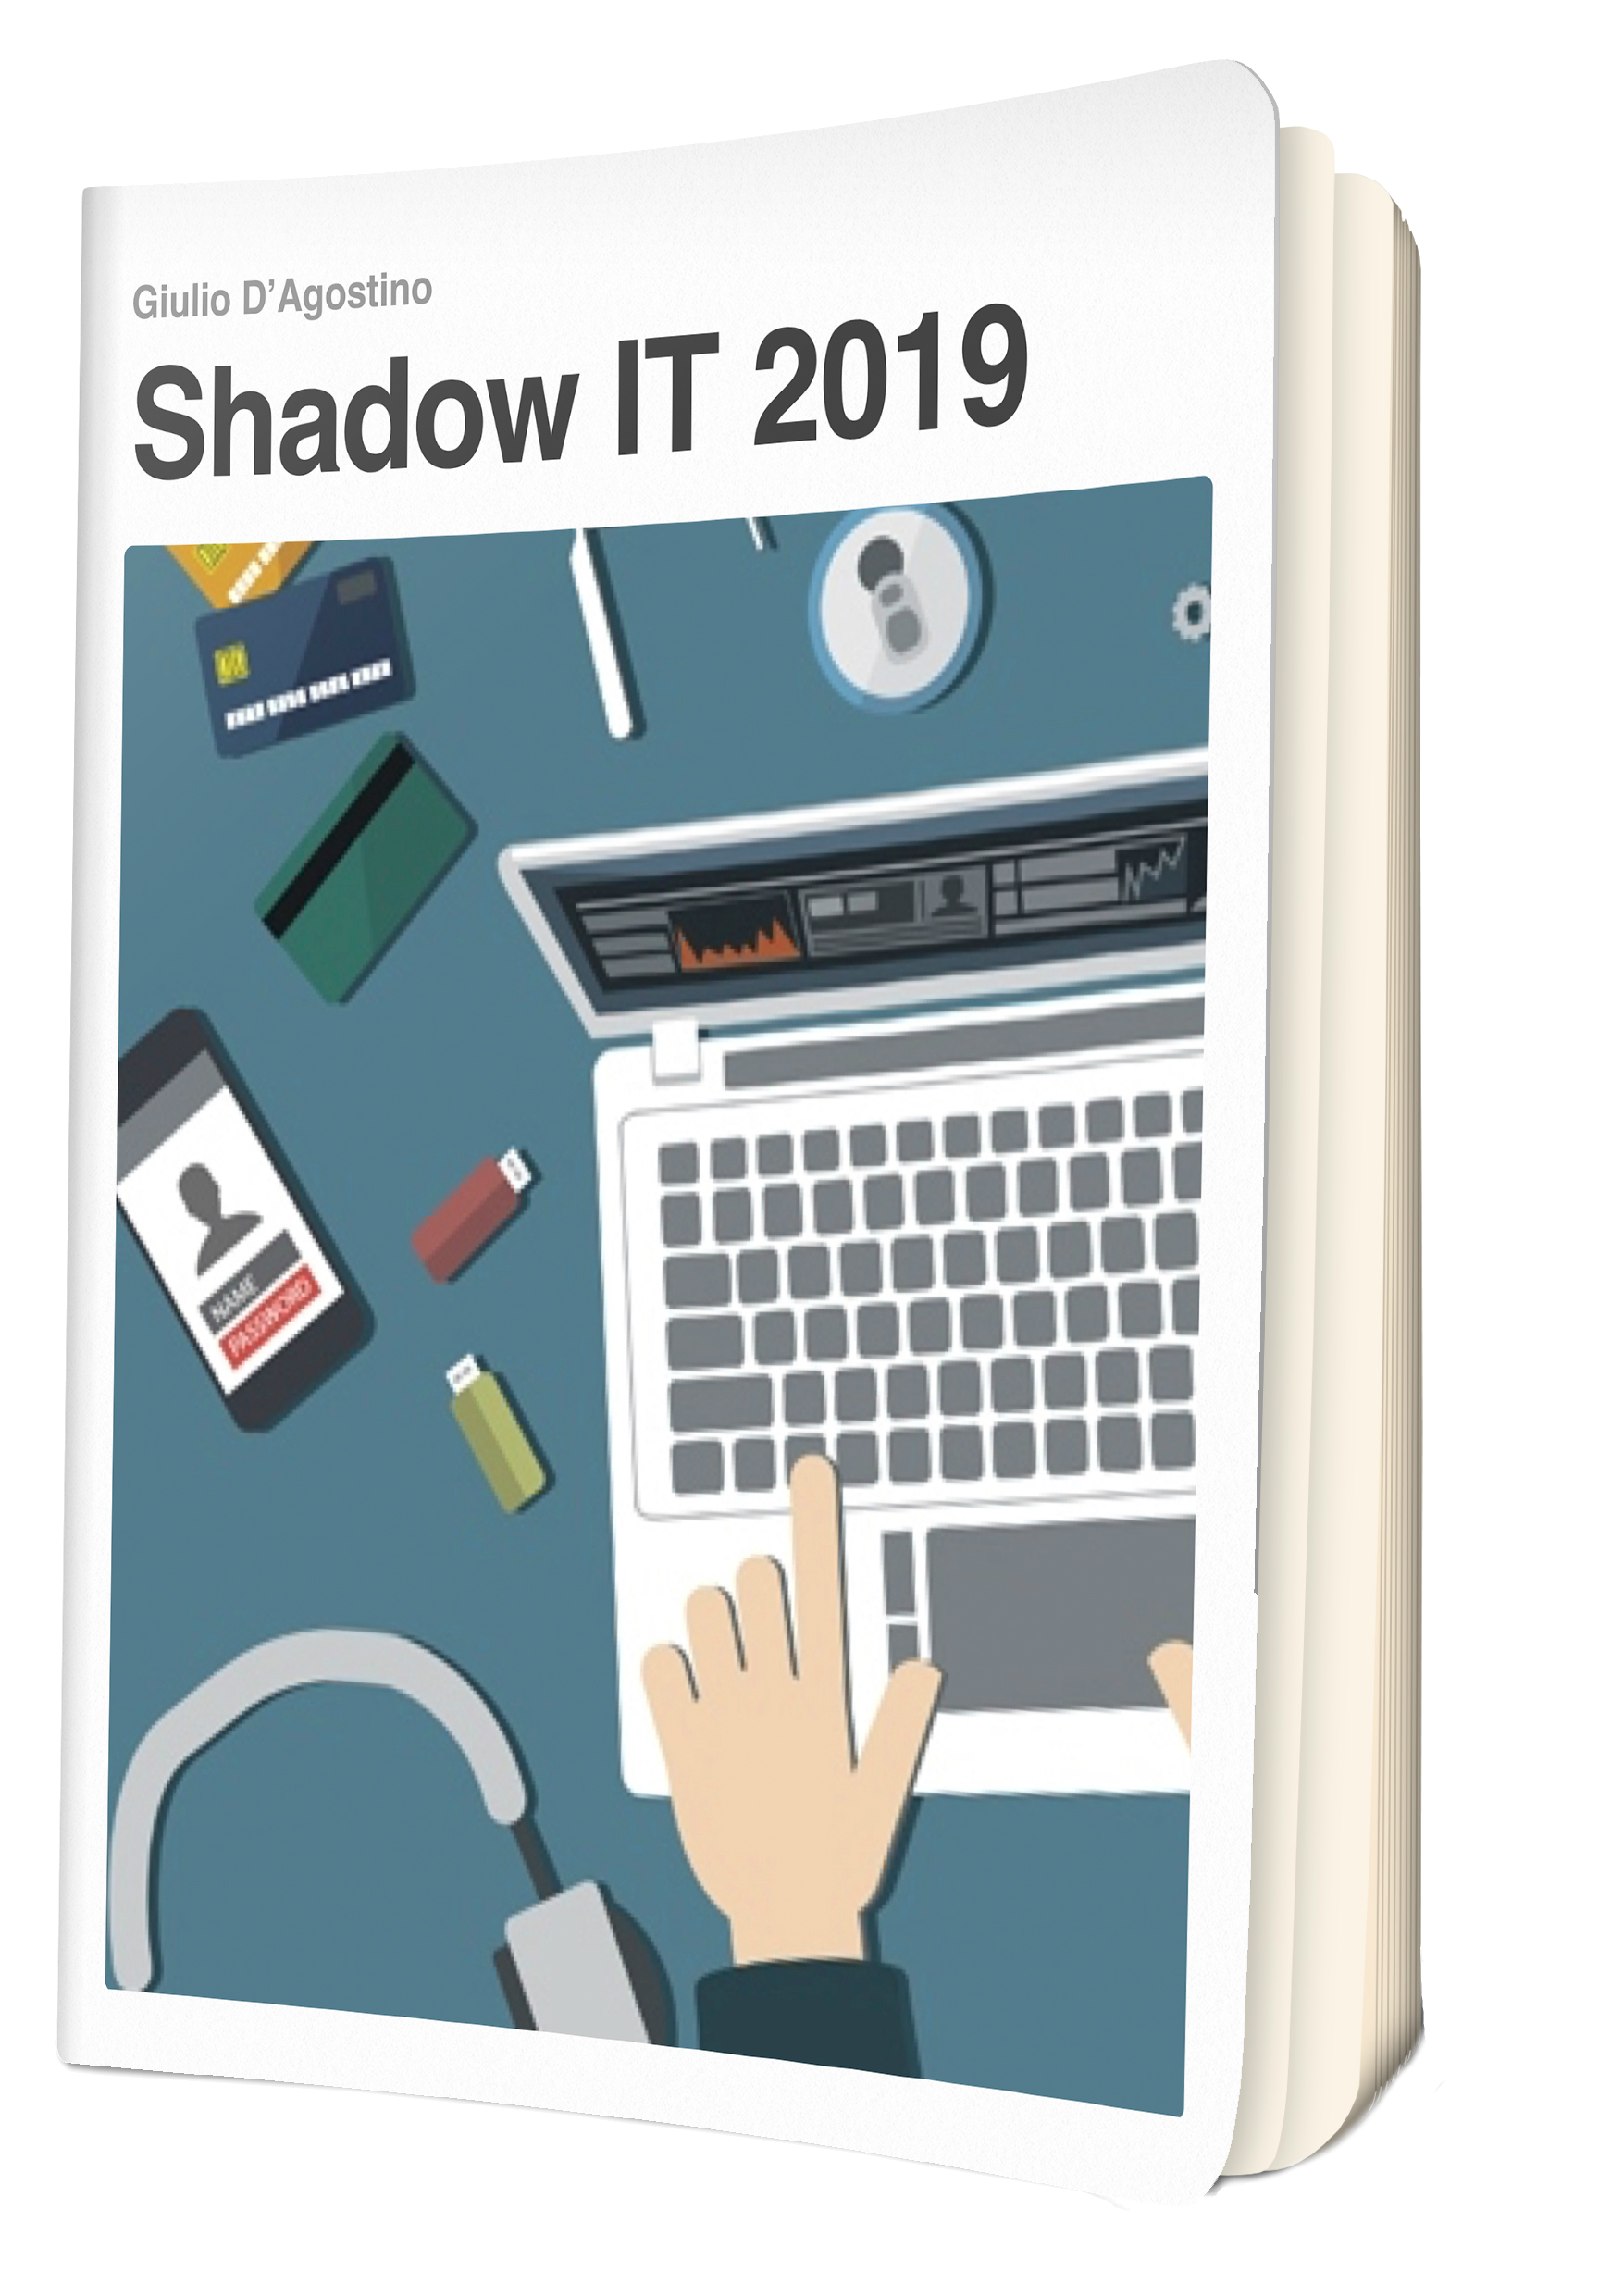 Get the FREE ebook SHADOW IT 2019